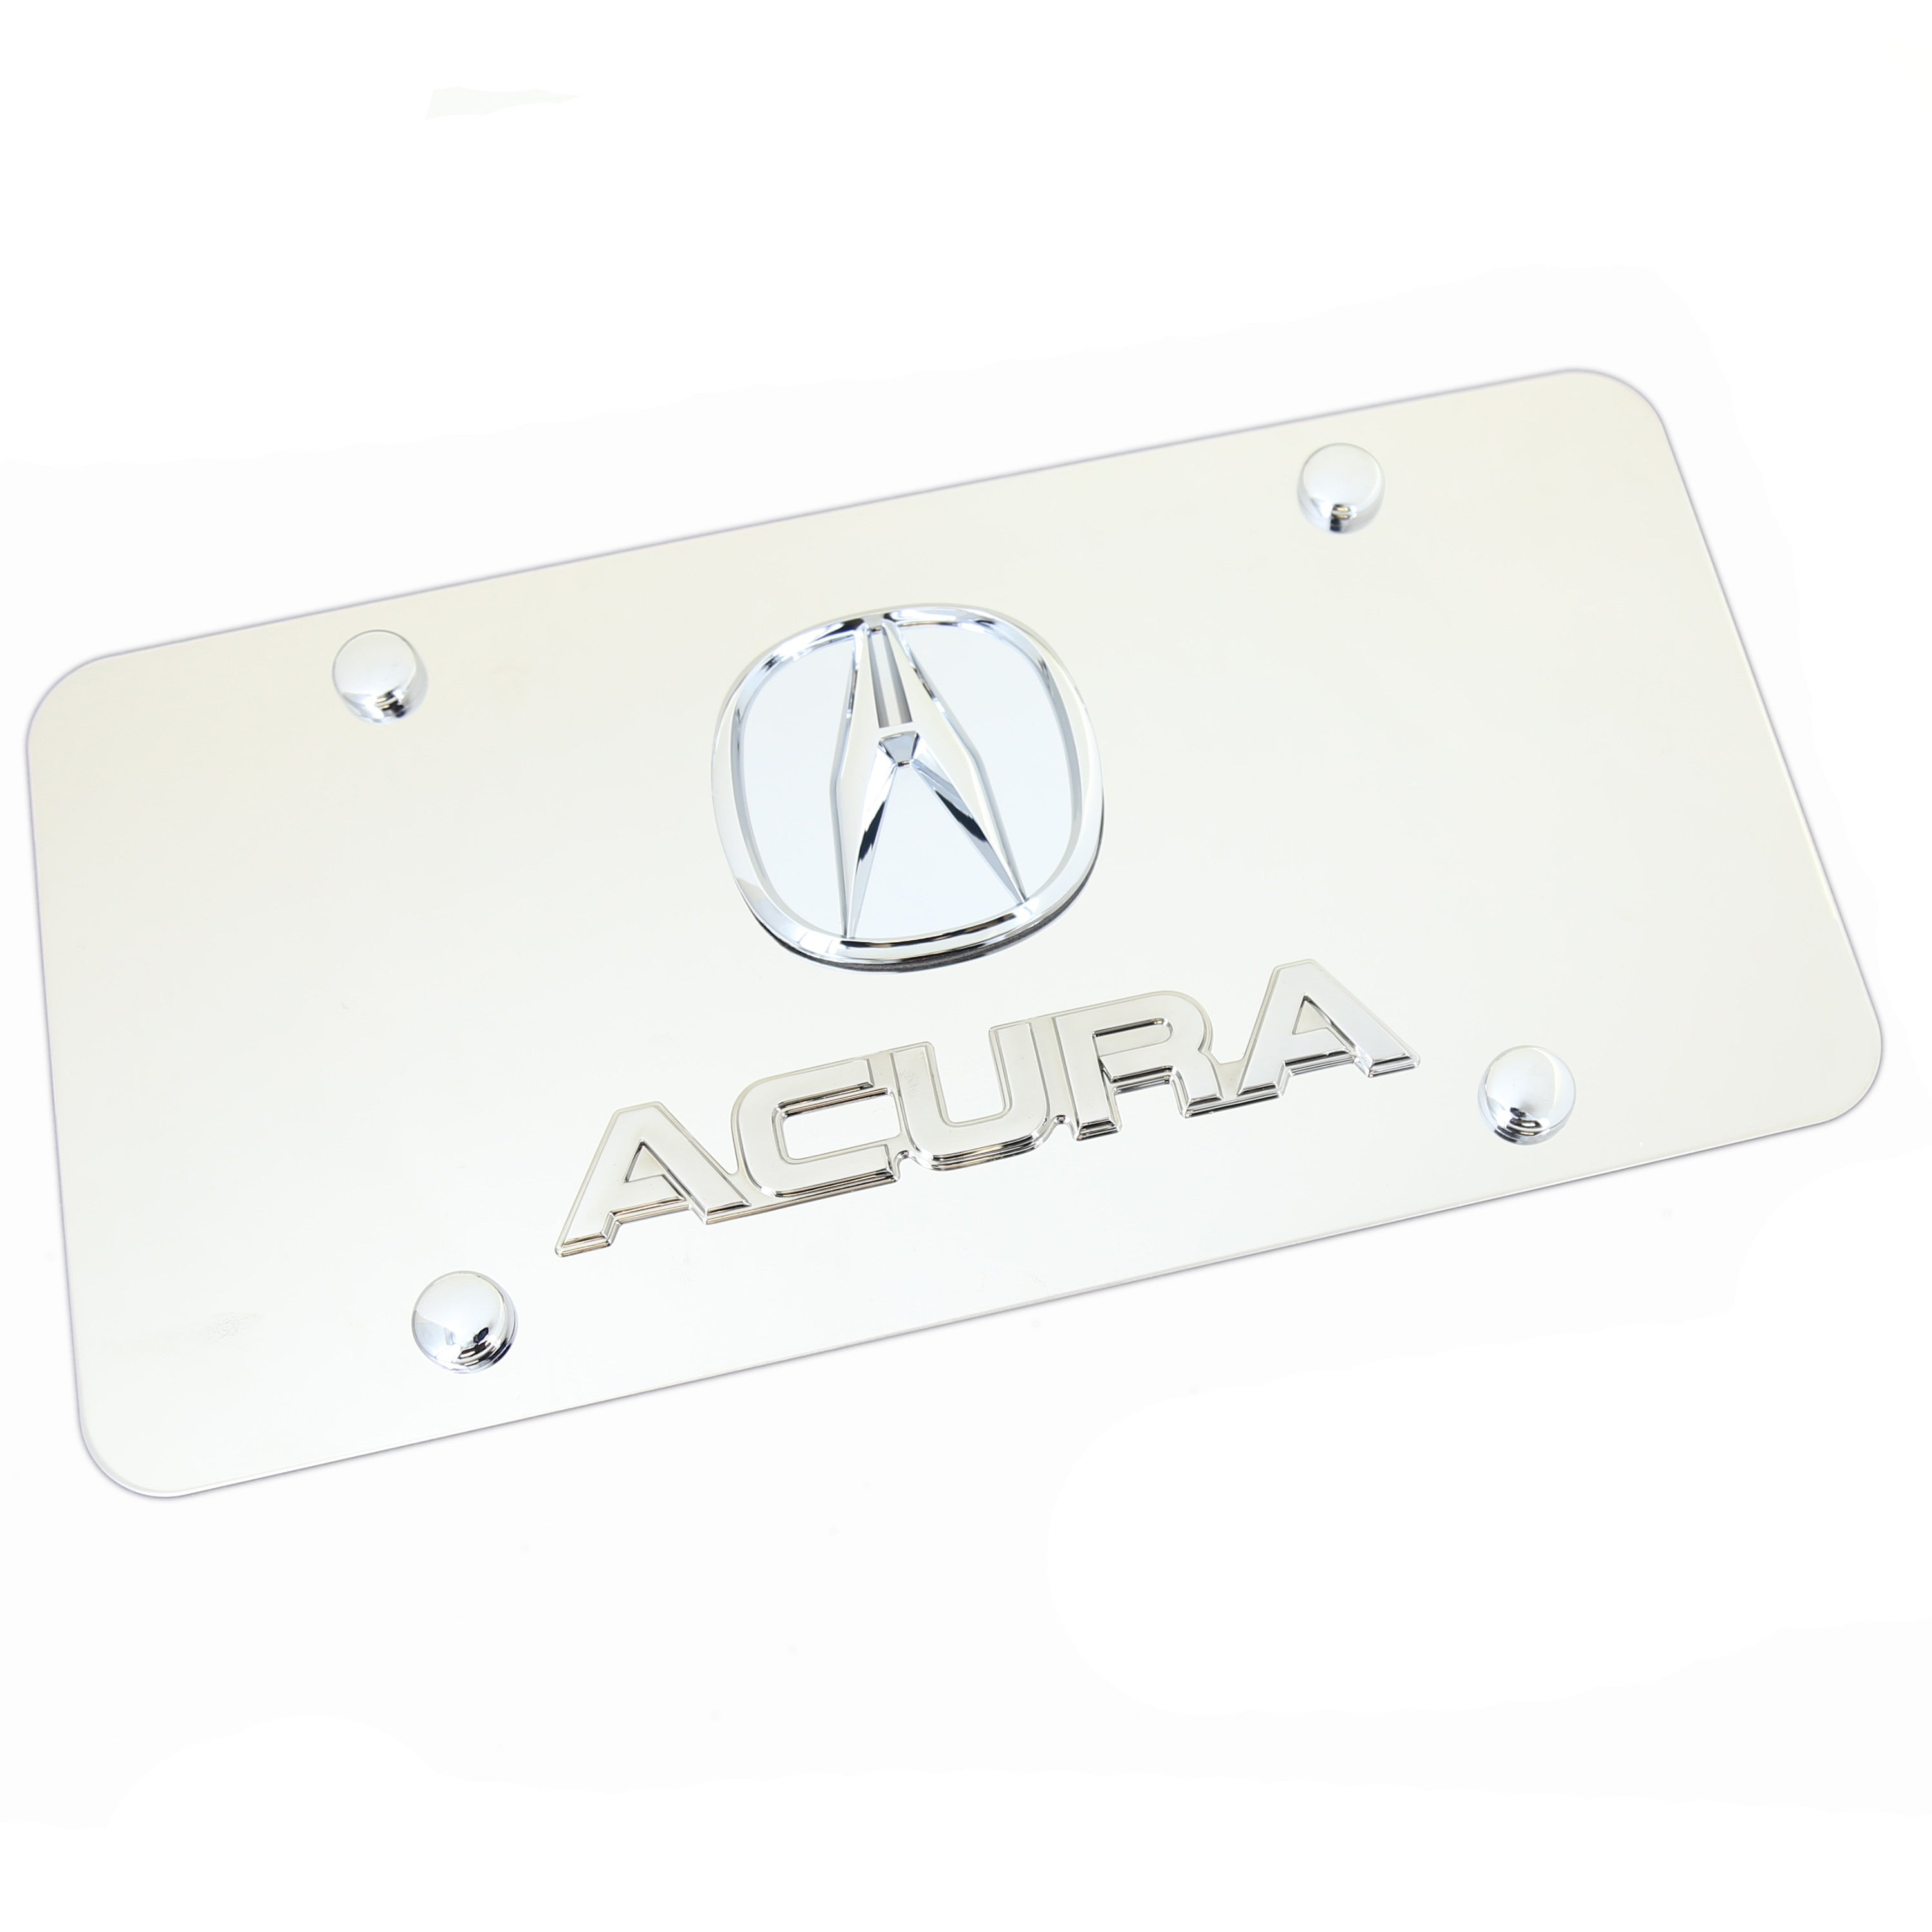 Acura Dual Logo Badge License Plate (Chrome) - Custom Werks